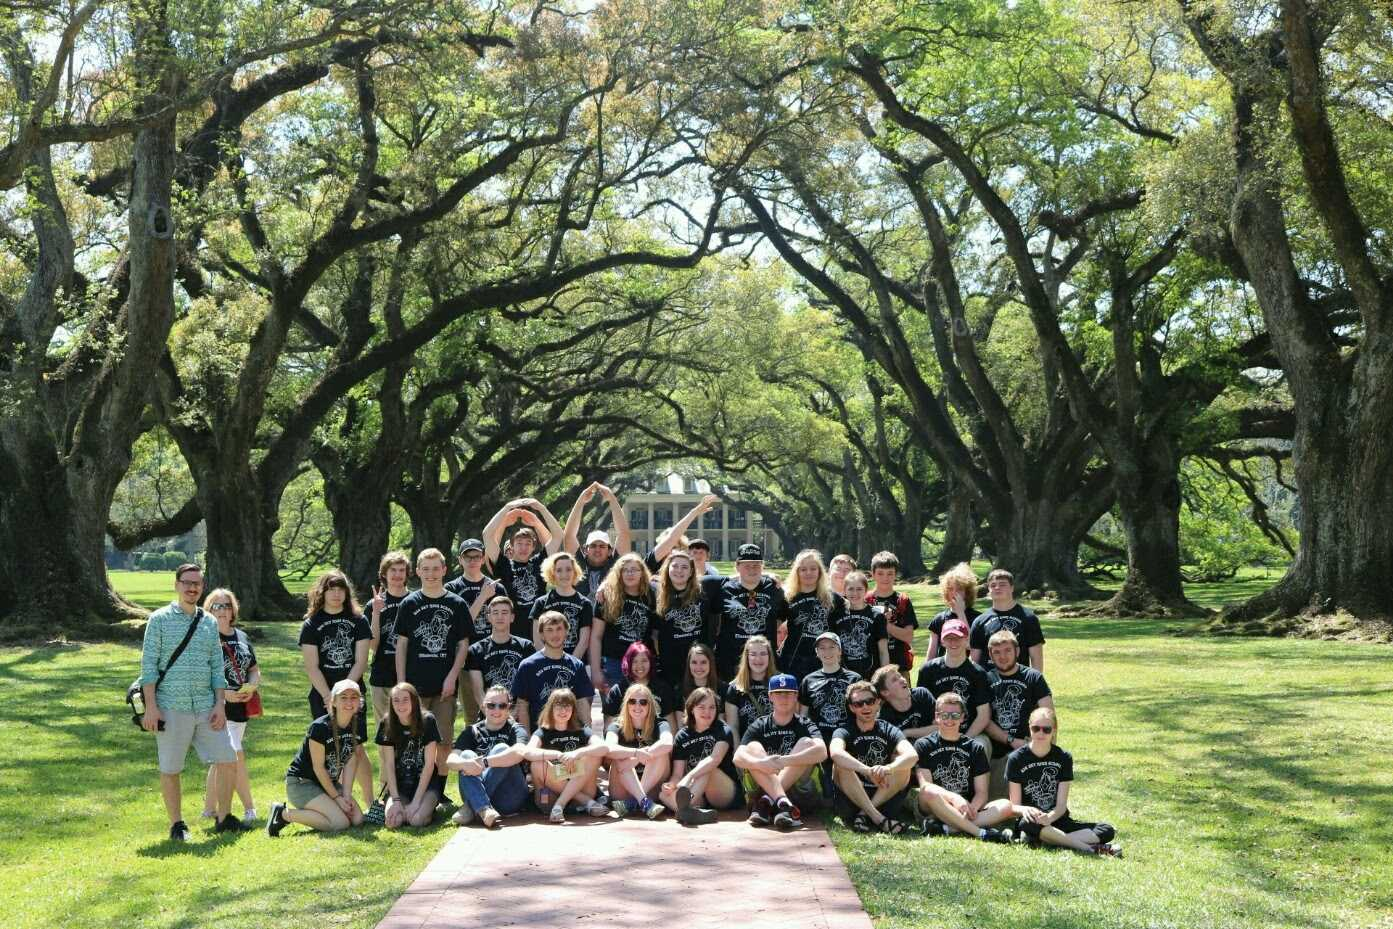 Band members at the Oak Alley Plantation in New Orleans over spring break